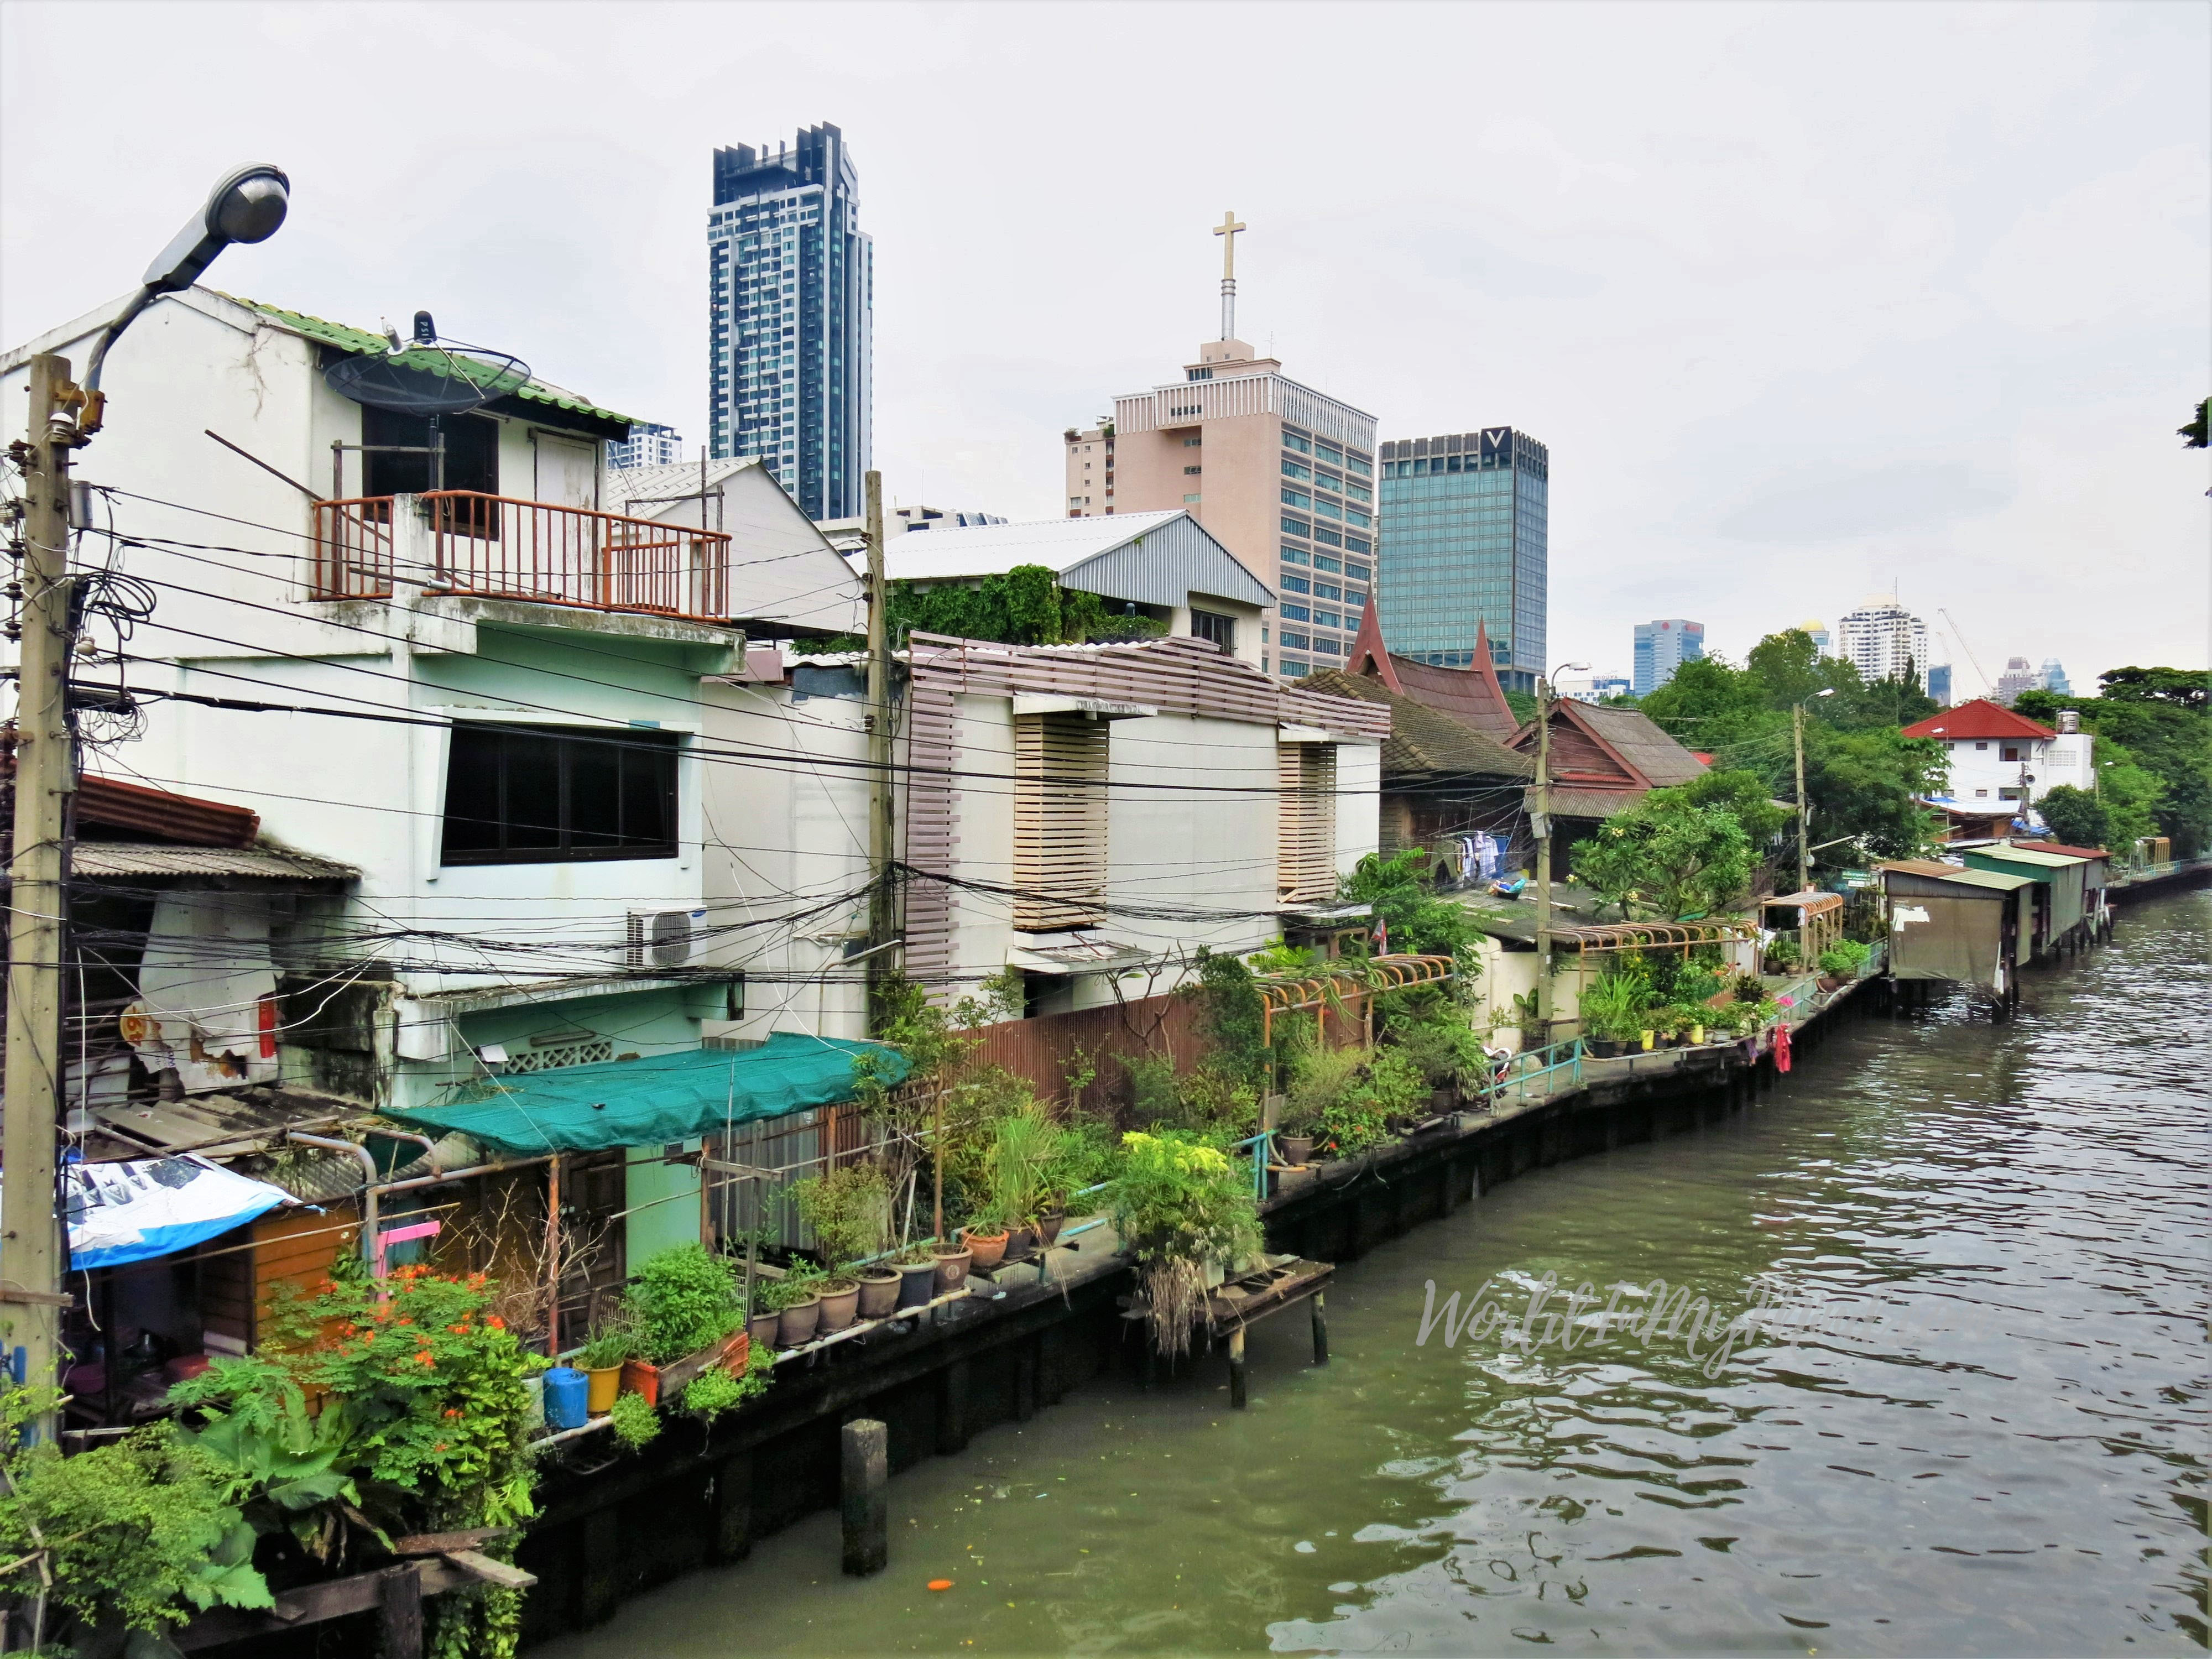 Urban photography: canal houses in Bangkok